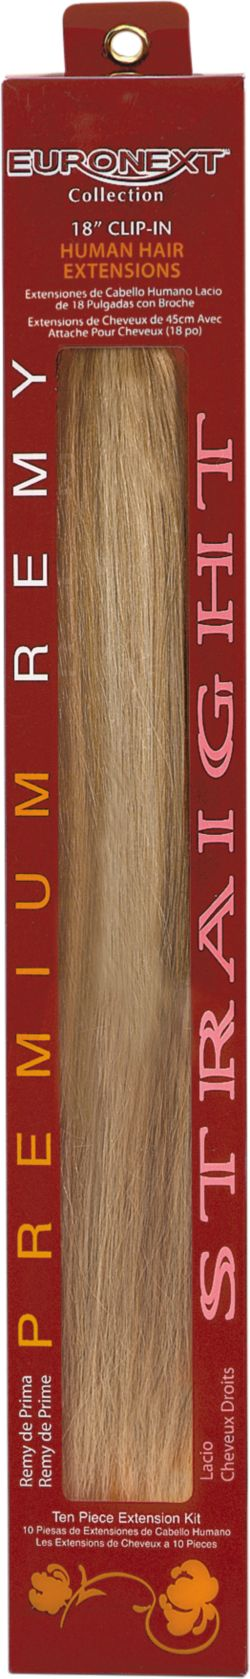 18 Inch Hair Extensions Sally'S 5